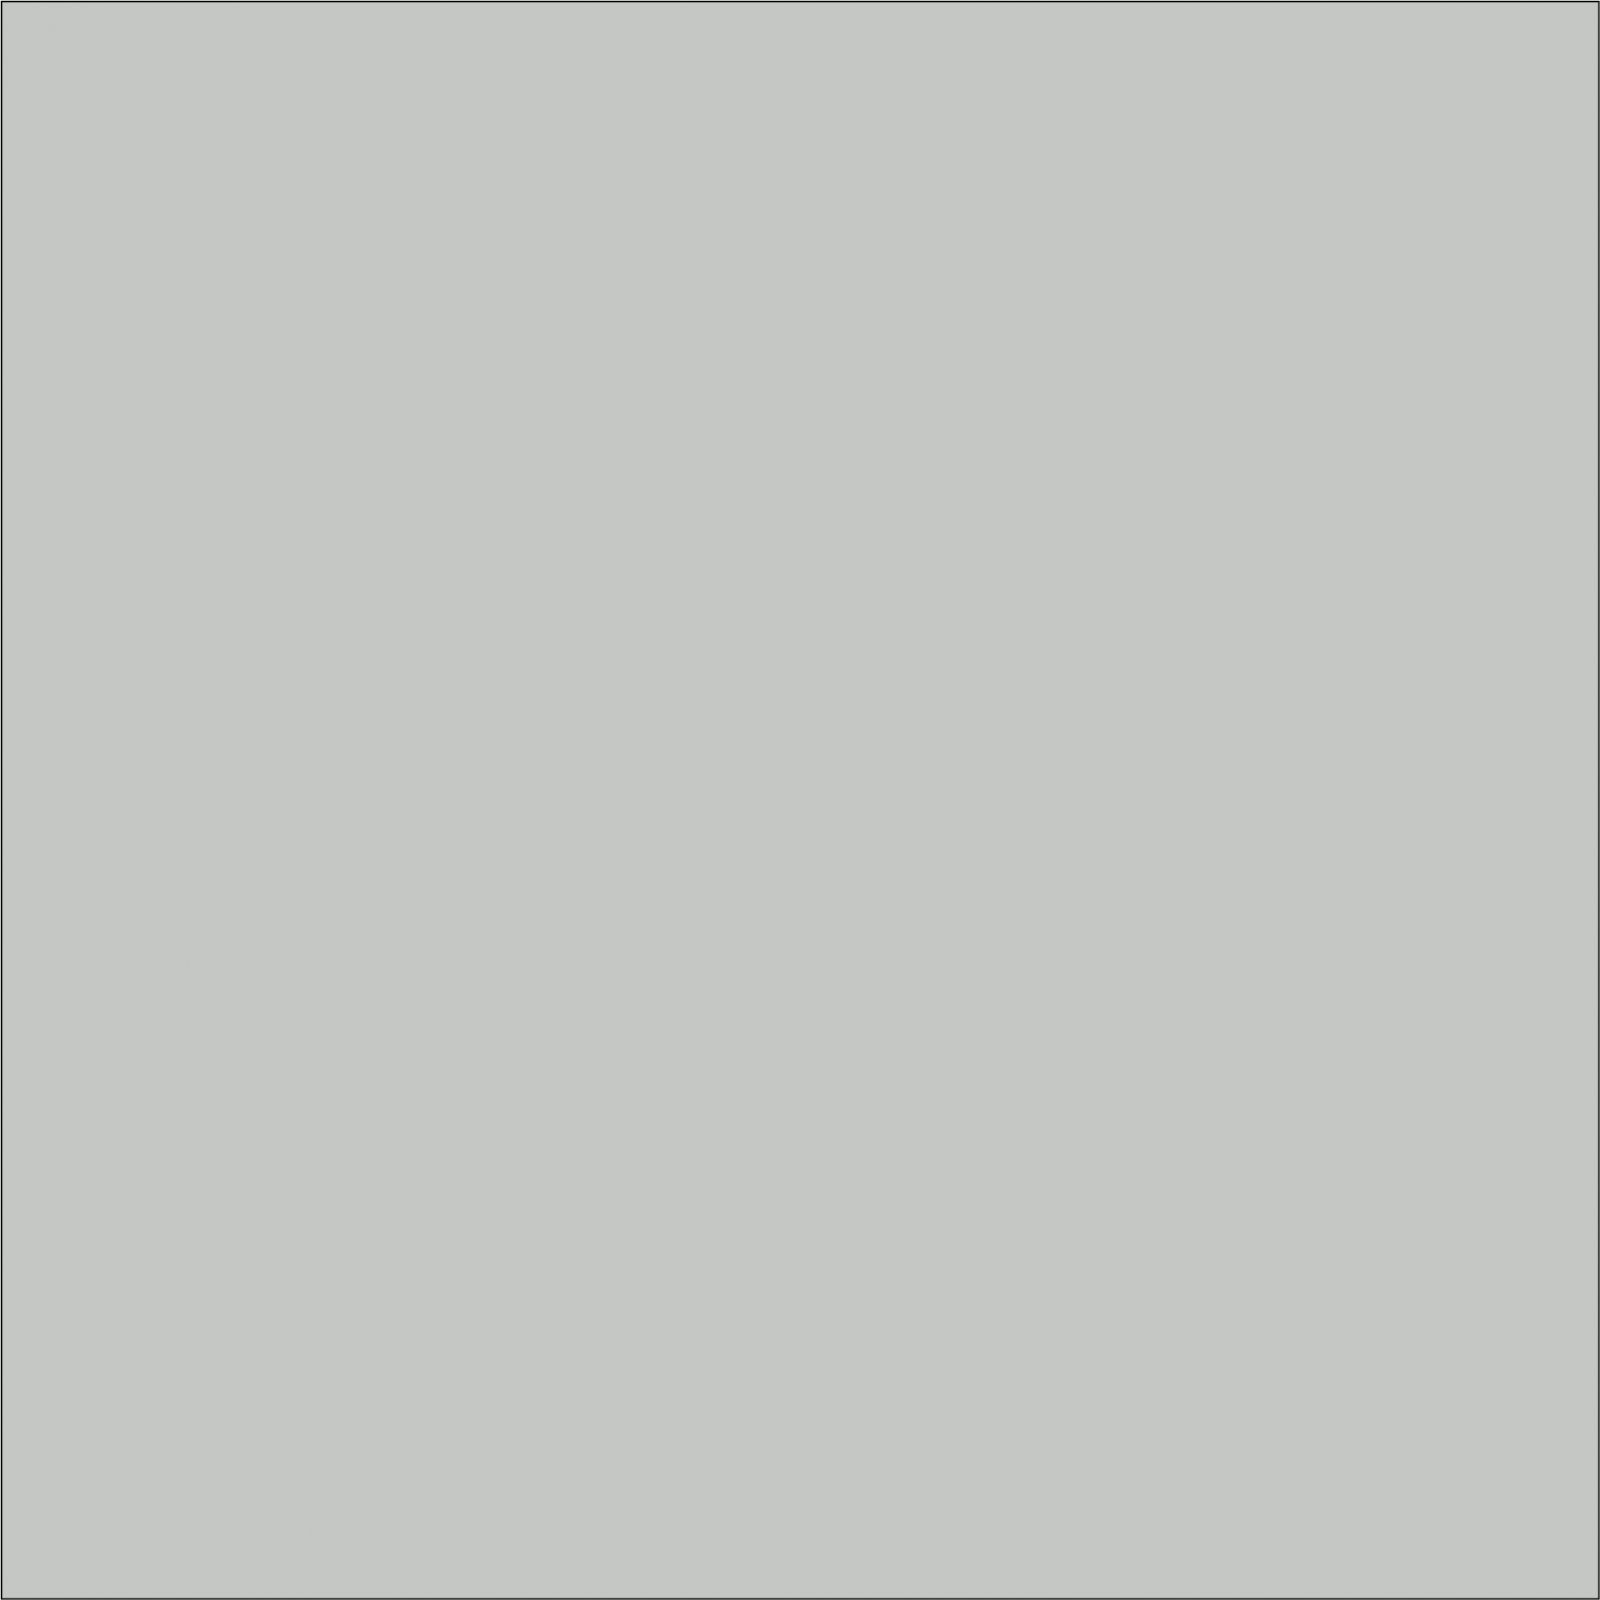 Colour swatch of Light Grey